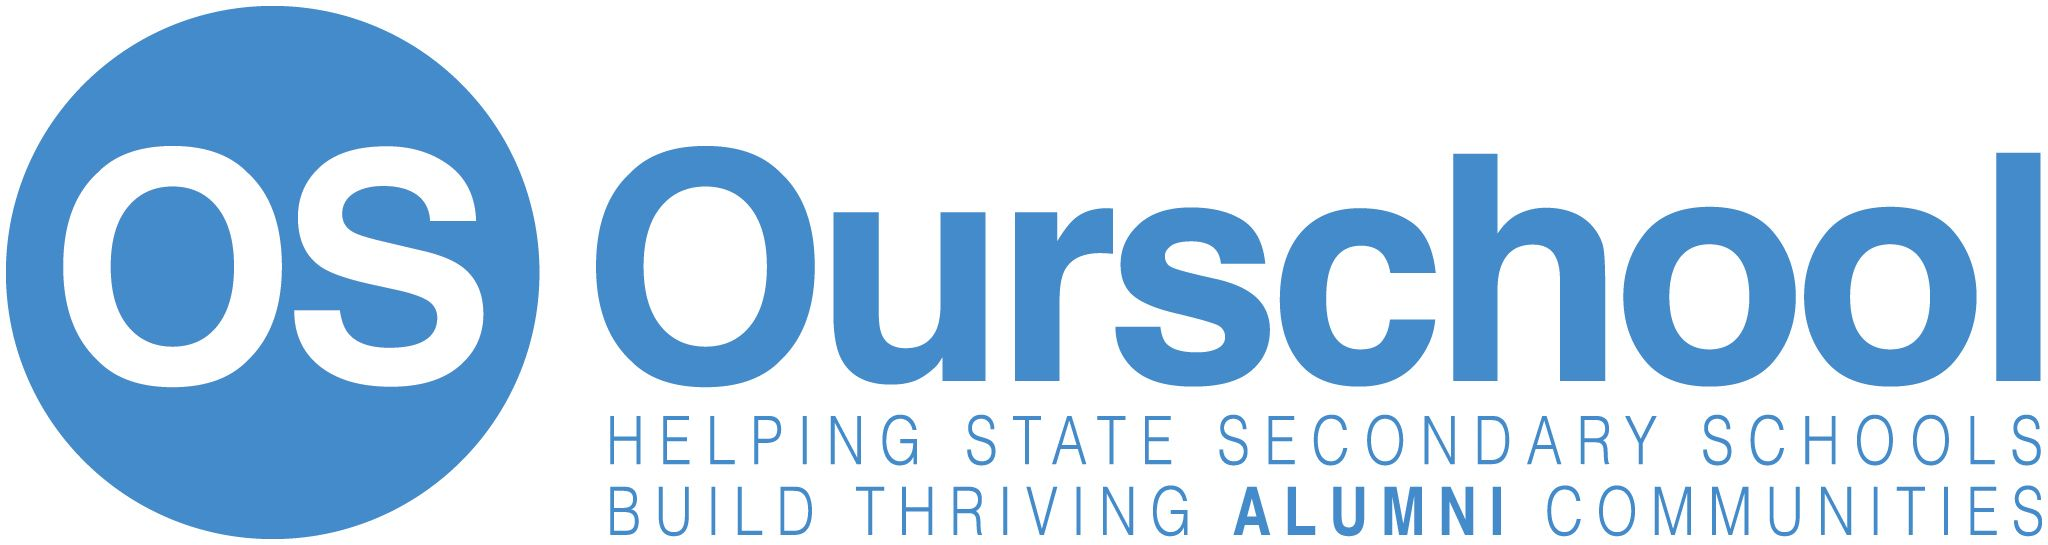 Ourschool RGB logo with tagline for online use - Kyneton High School - Excellence in Teaching & Learning